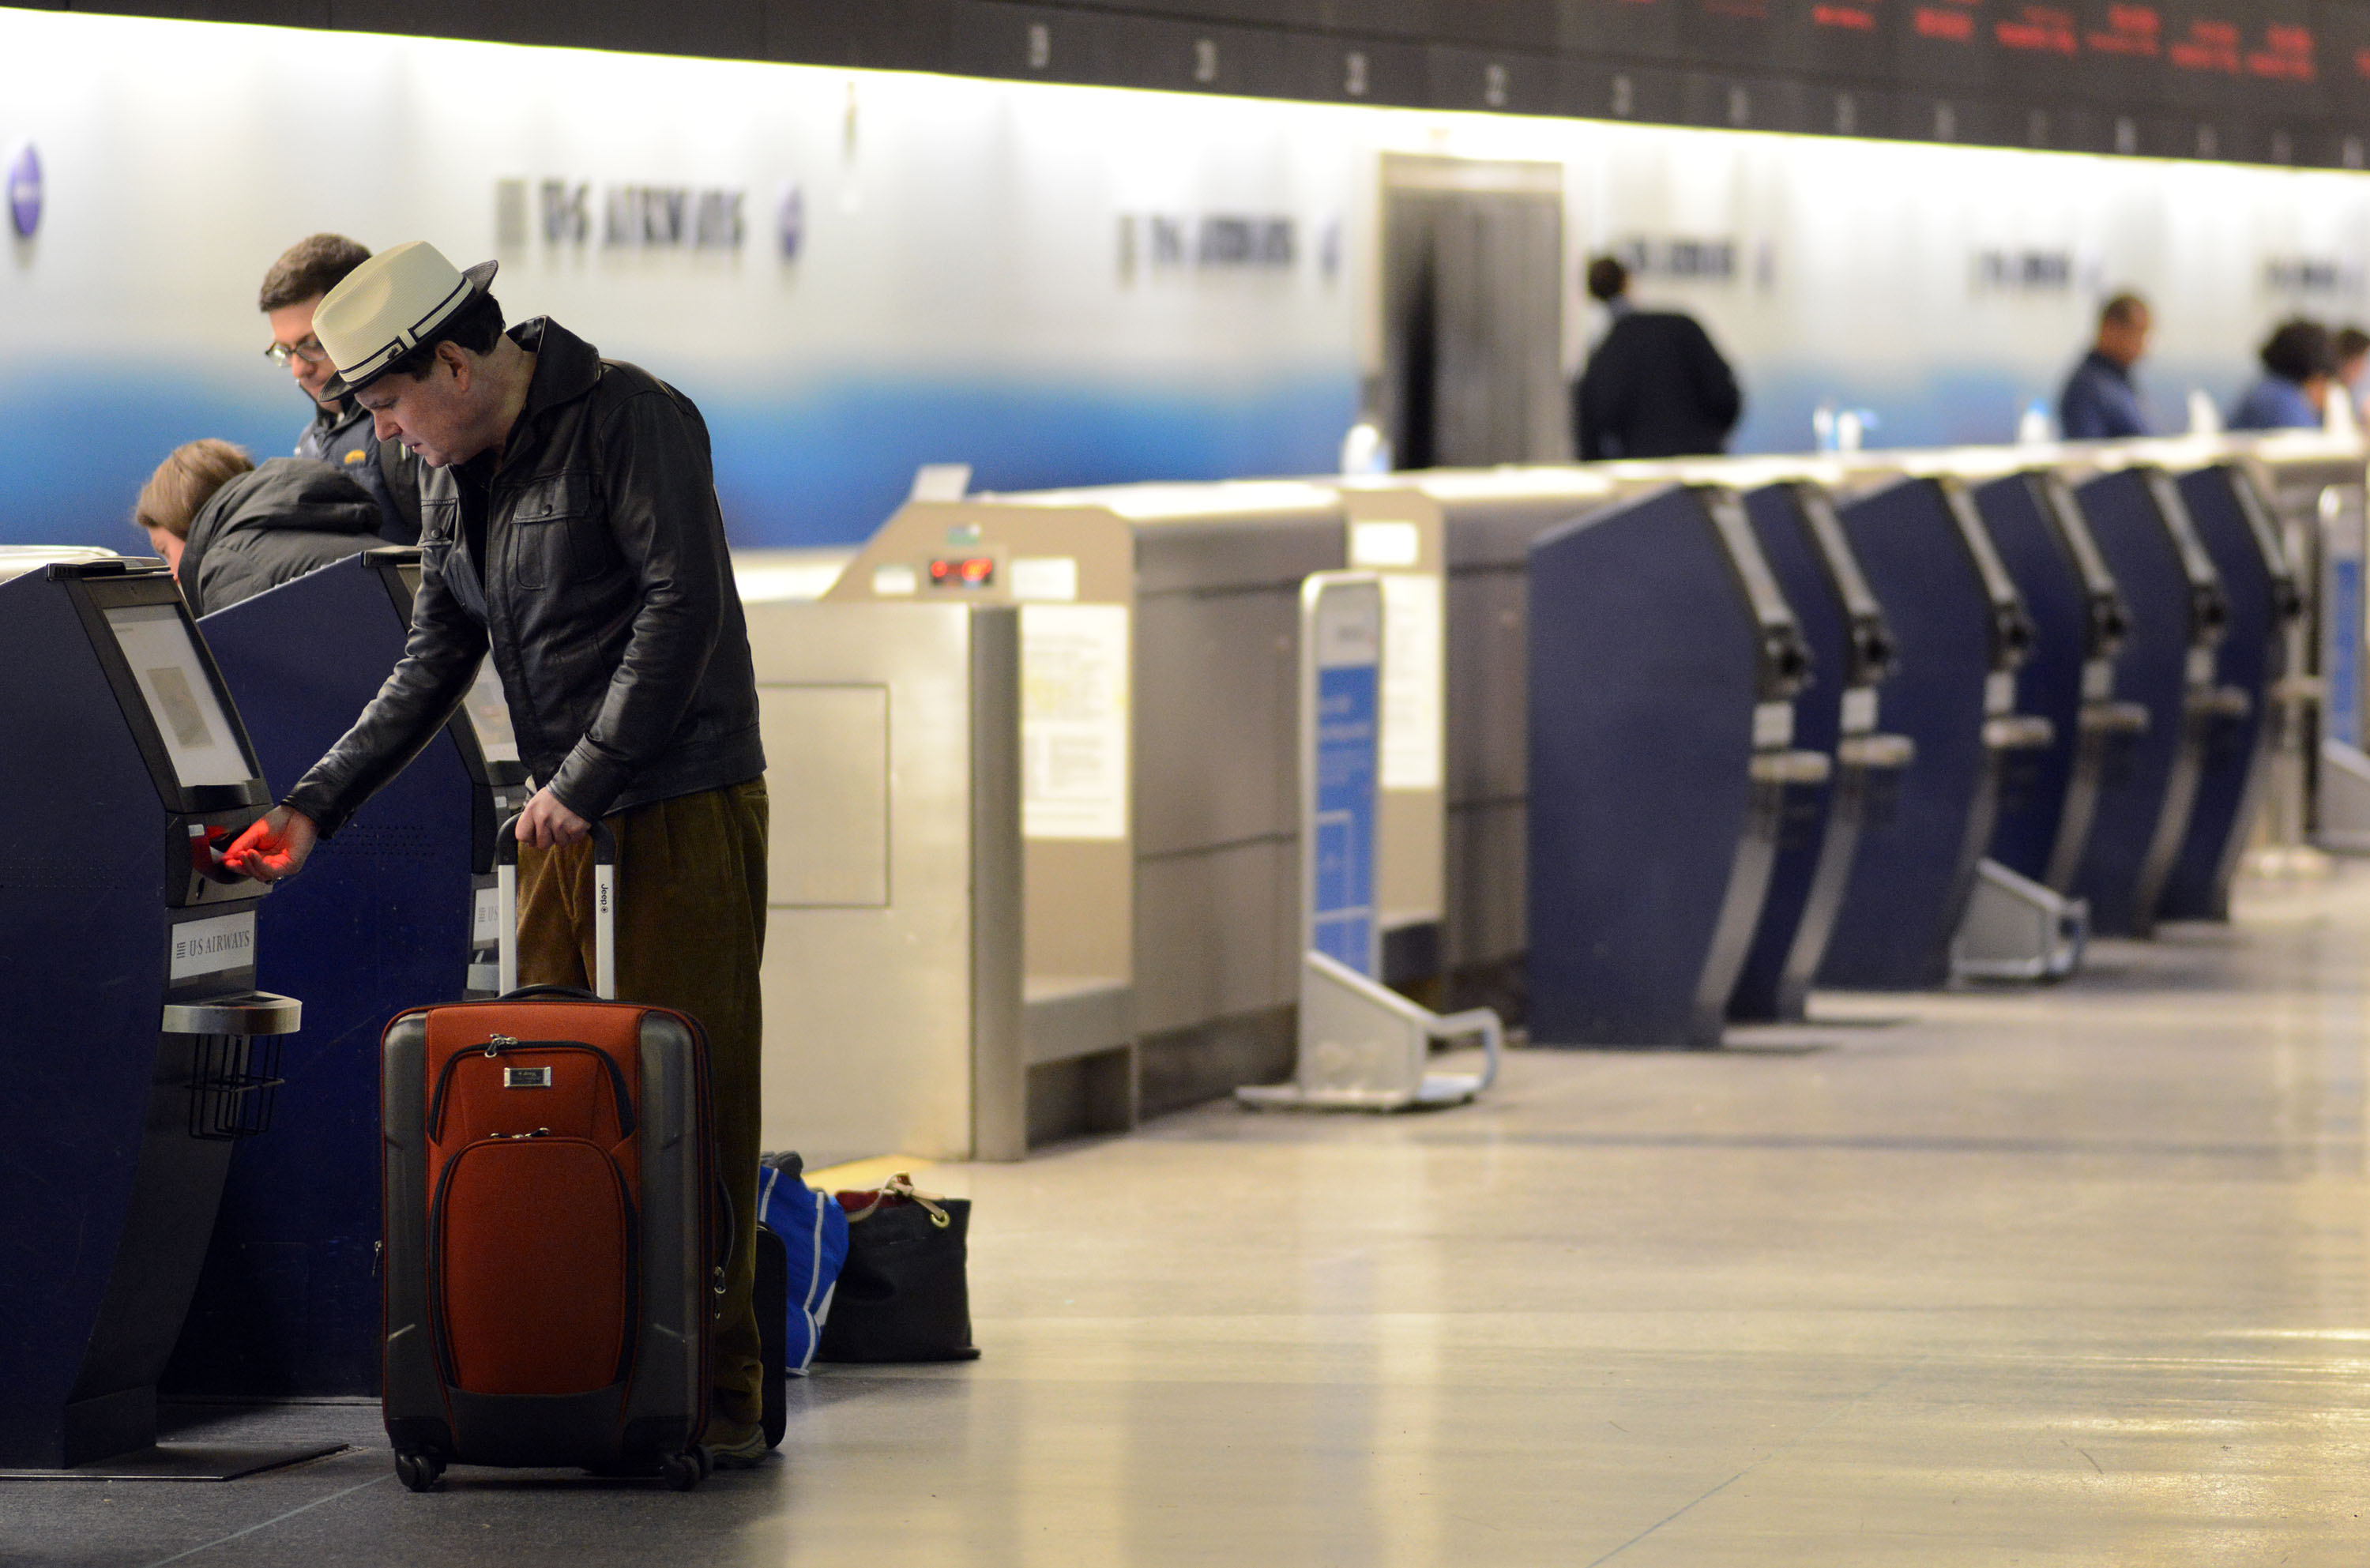 PHILADELPHIA, PA - NOVEMBER 26: Noel Grayson of Chesterbrook, Pennsylvania takes his boarding pass from a kiosk at Philadelphia International Airport November 26, 2014 in Philadelphia, Pennsylvania. Grayson was traveling to Asheville, North Carolina. A winter storm causes travel delays at the airport on the eve of Thanksgiving. (Photo by William Thomas Cain/Getty Images)